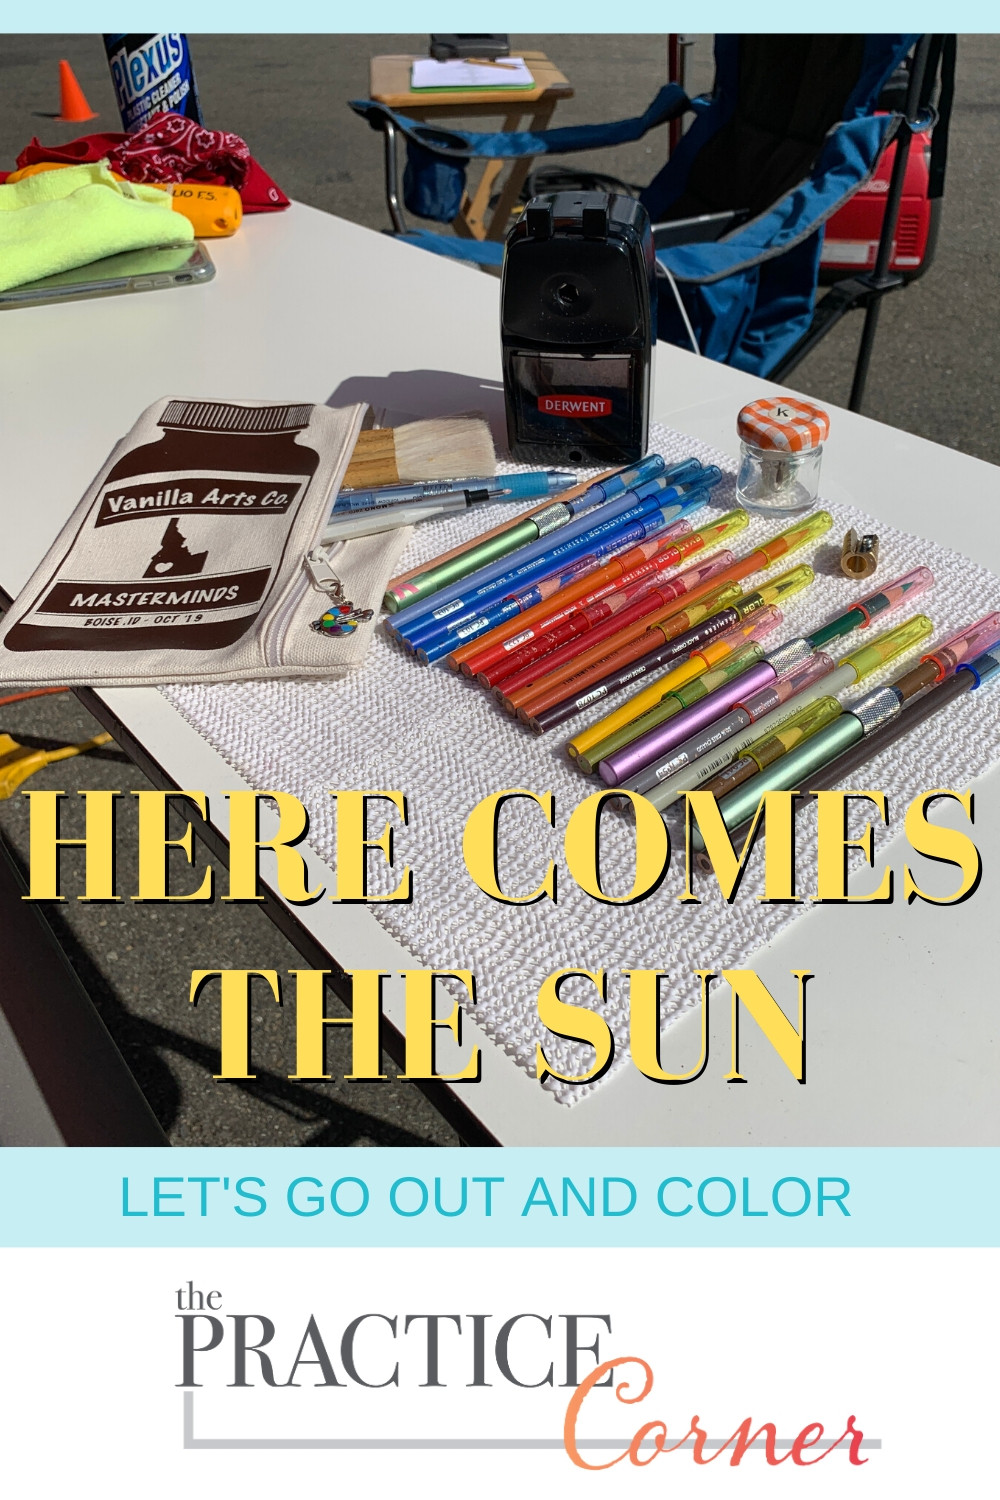 Coloring Outdoors | Prepare for summer vacation coloring | Coloring Supplies for Colorers | #thepracticecorner #coloringsupplies #coloringtips